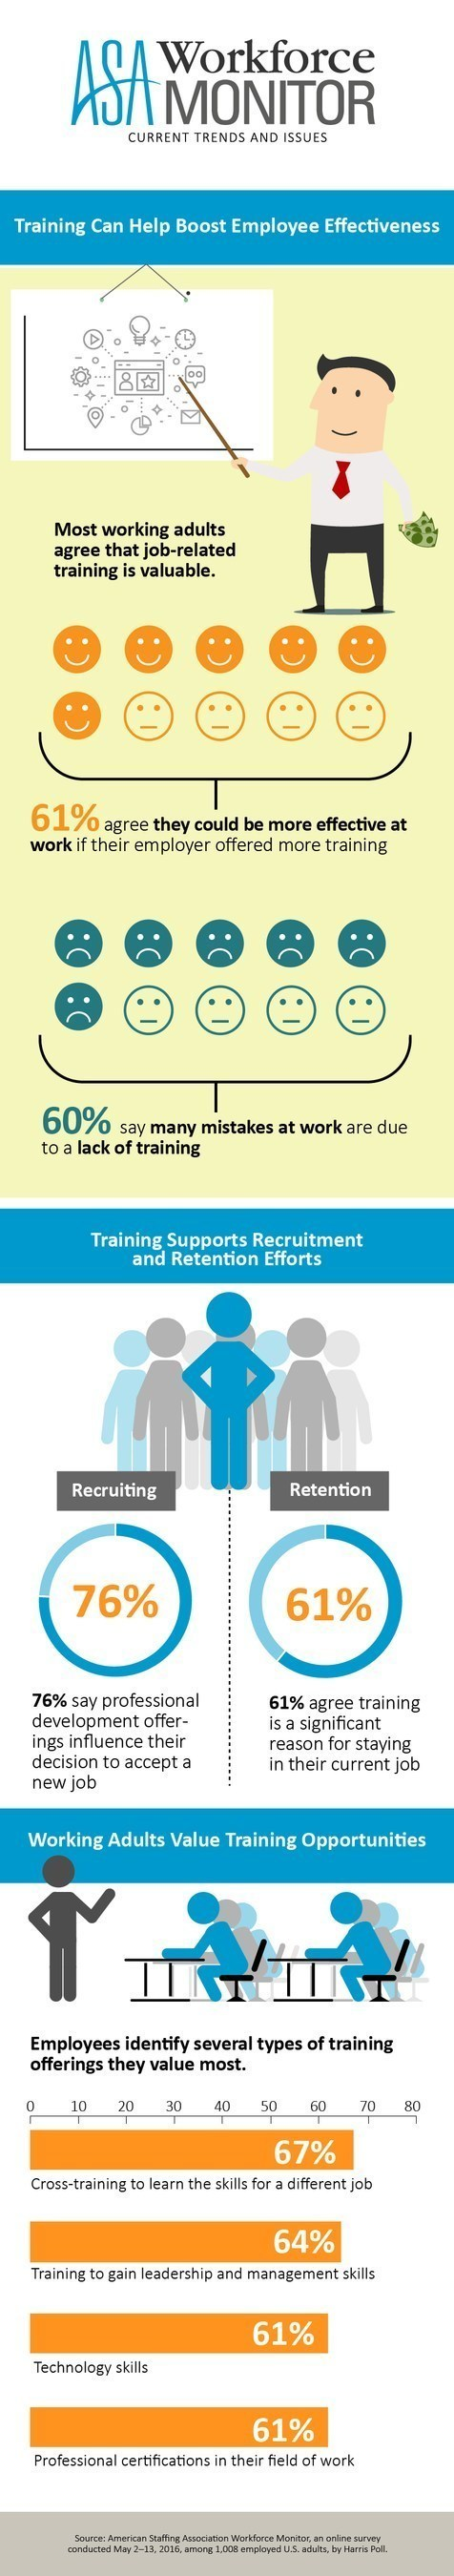 For a majority of working adults, employer-provided training programs can improve their effectiveness and help limit mistakes on the job, according to the ASA Workforce Monitor.